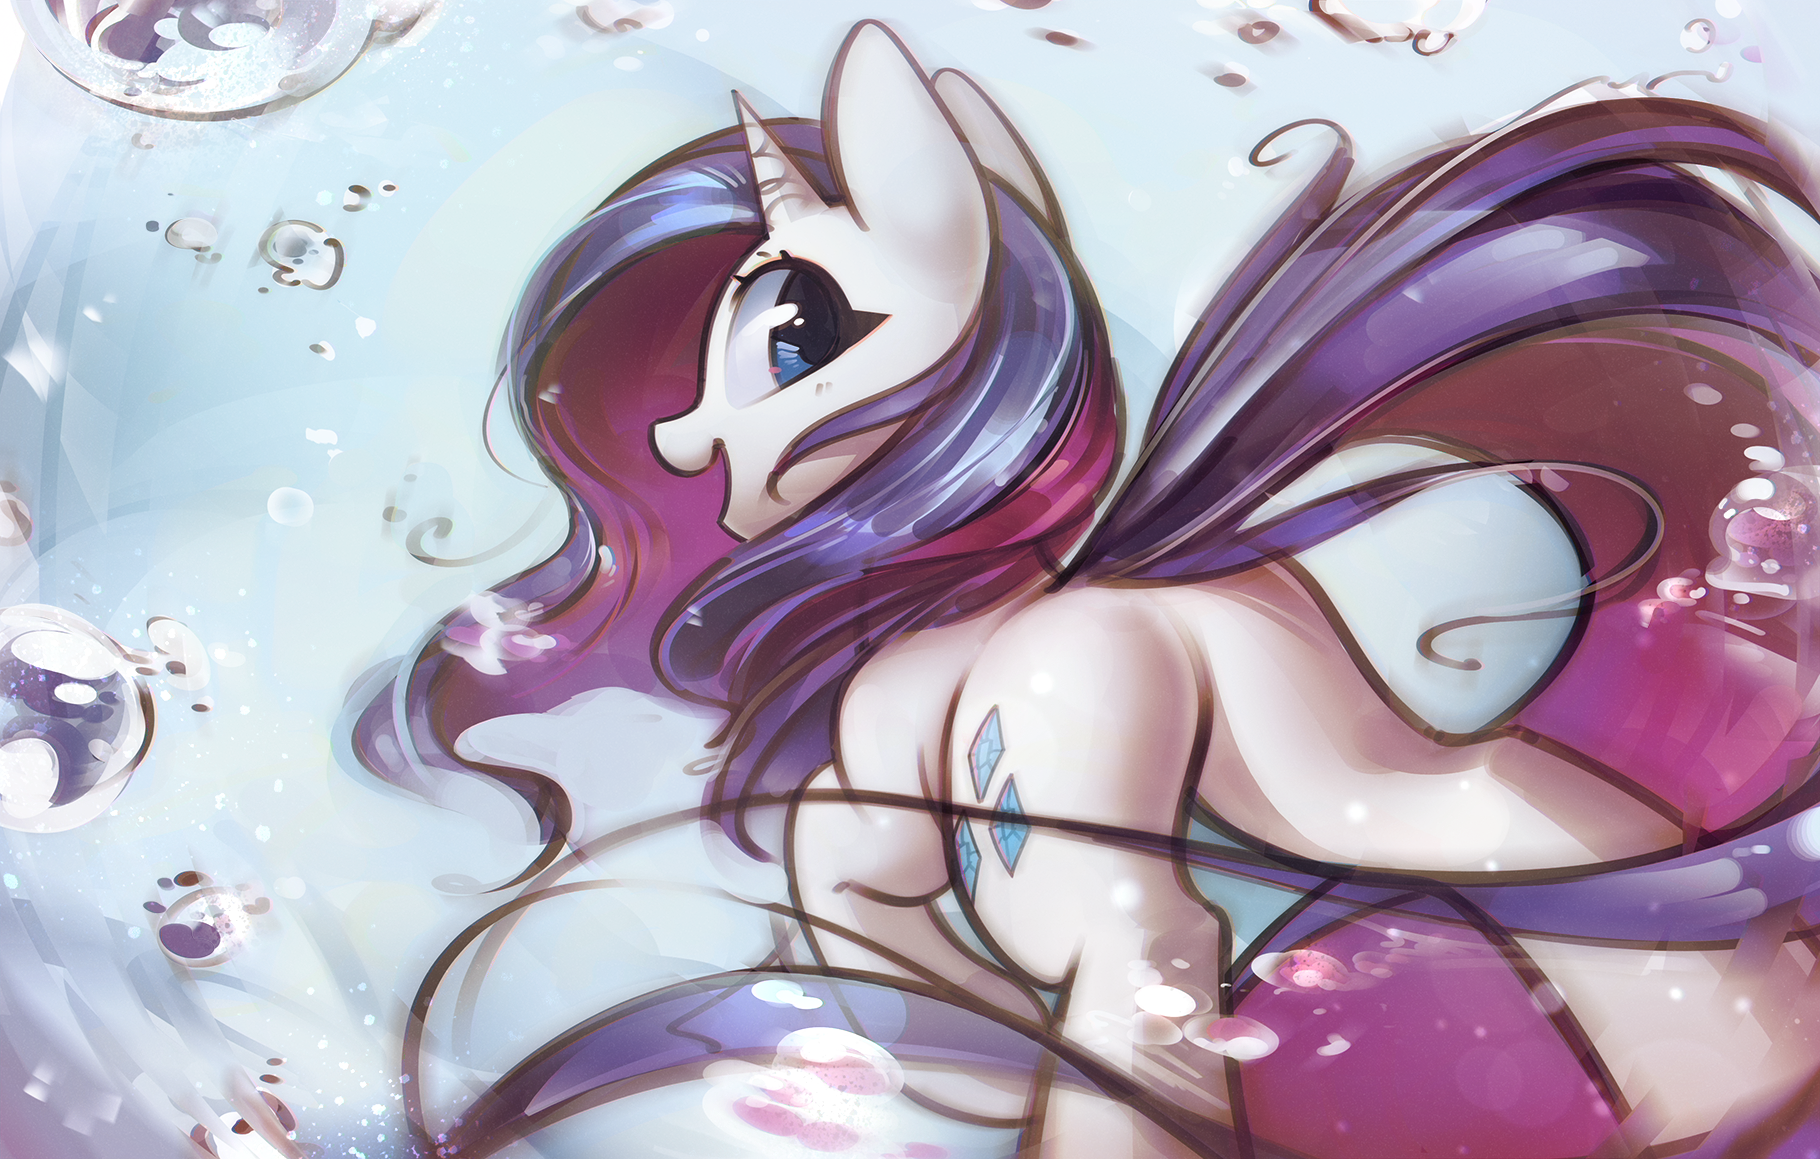 Splash by mirroredsea